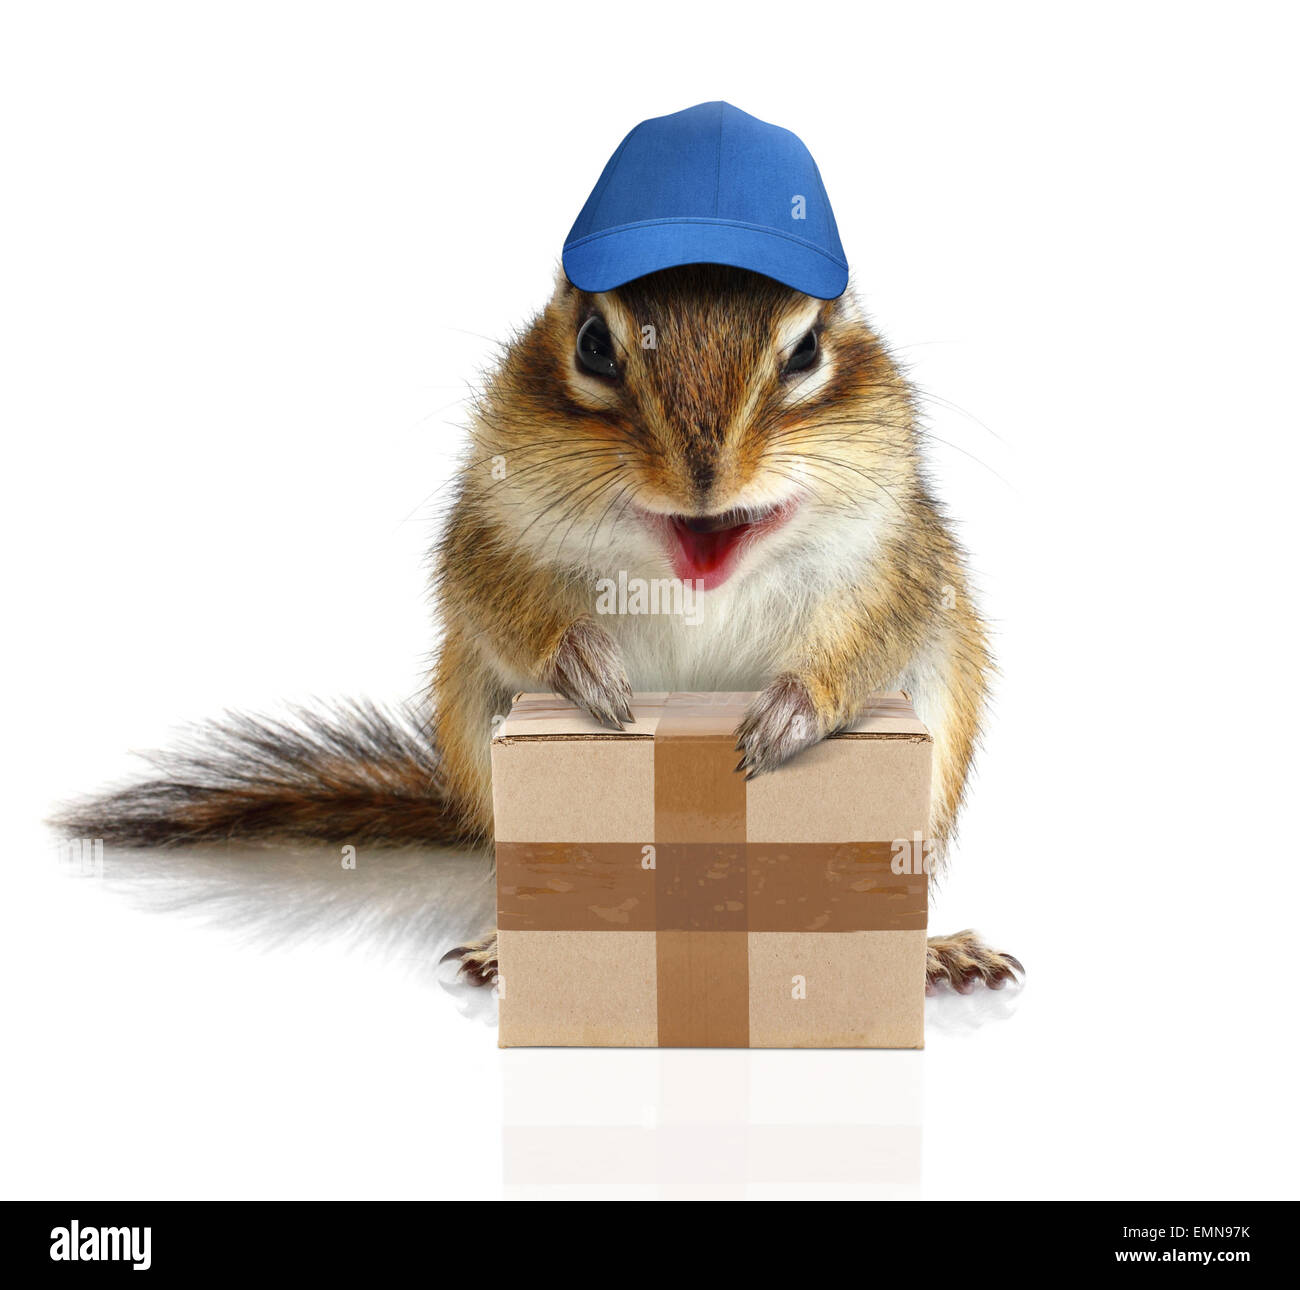 comical chipmunk courier hold parcel, delivery concept - Stock Image